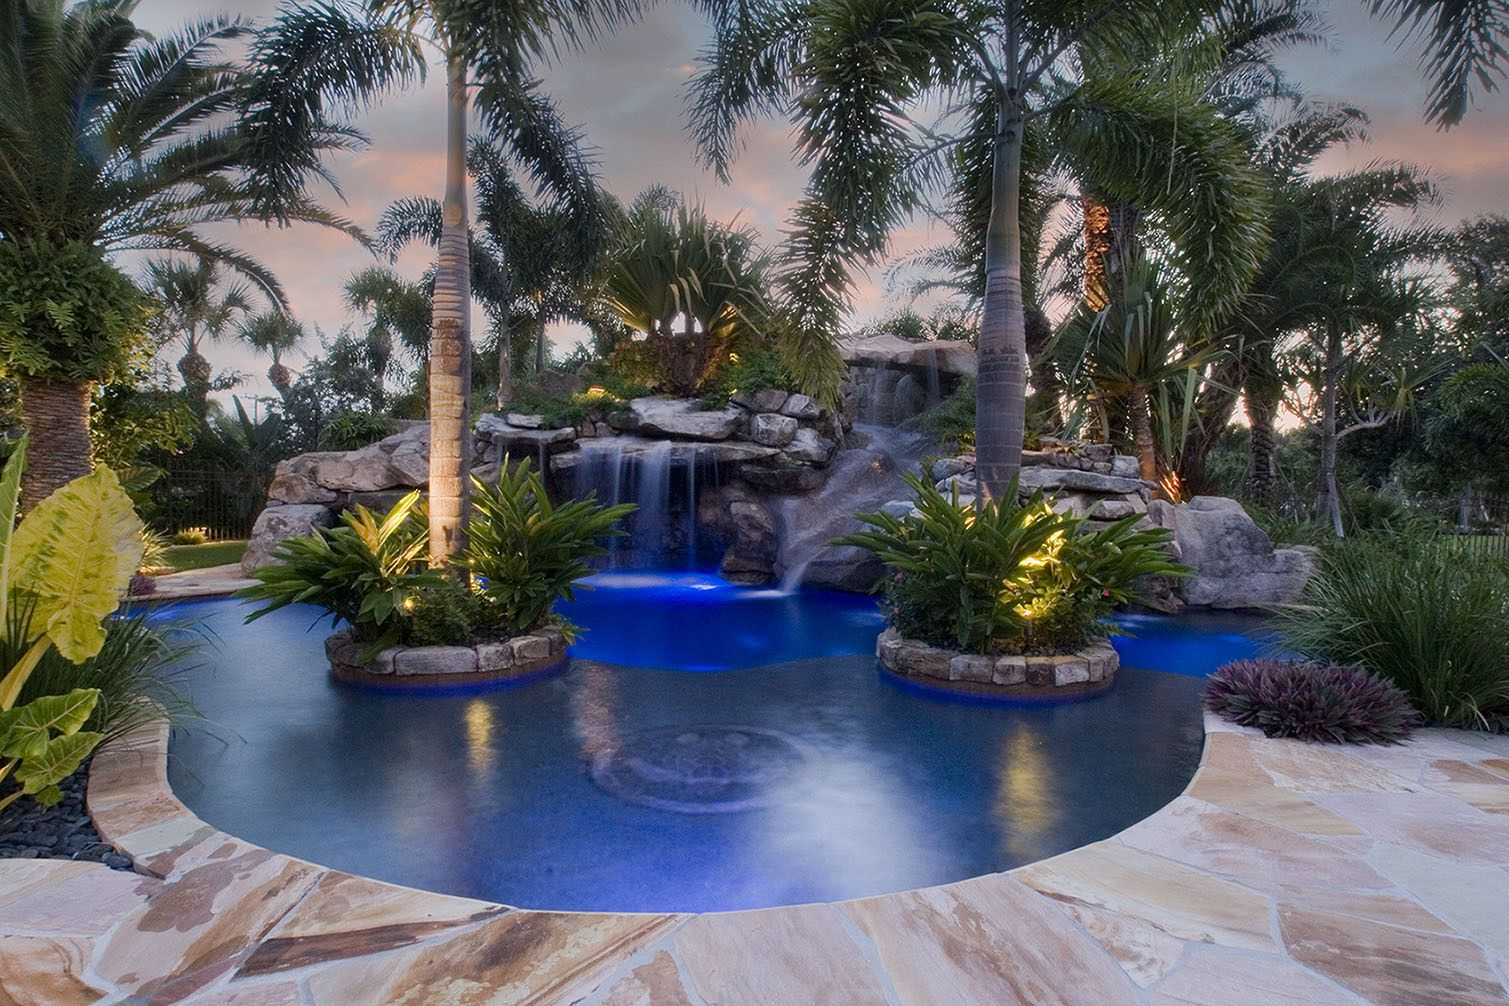 Swiming pools a heinsler front tips to apply pool designs for Pool design florida